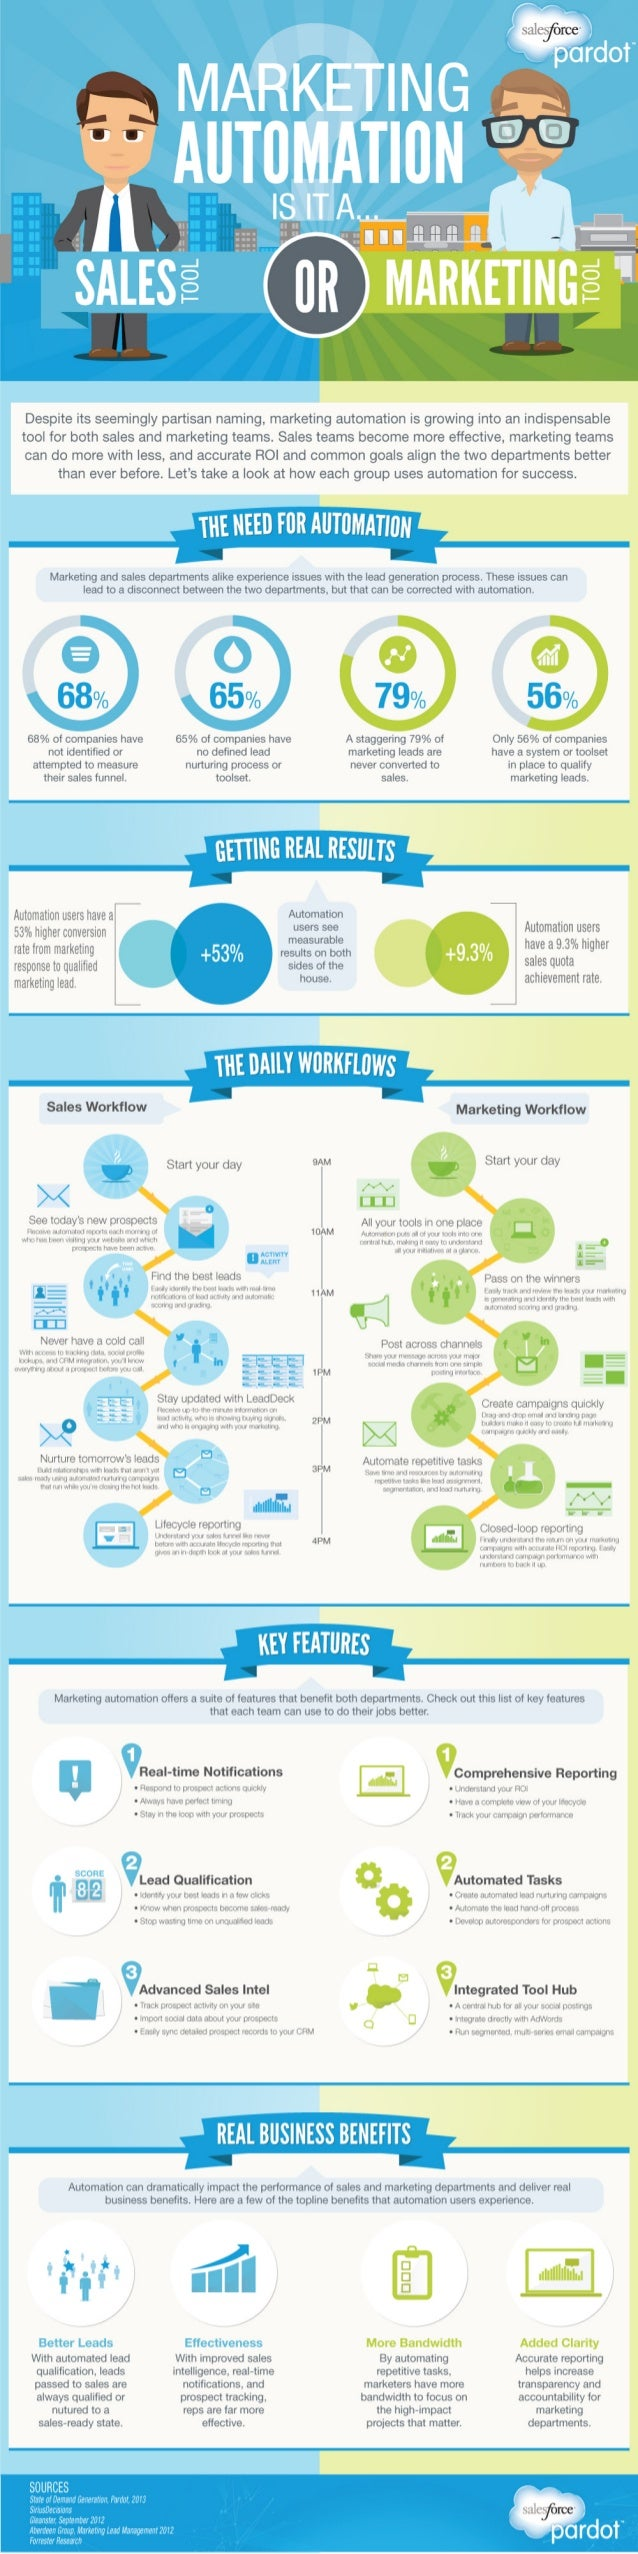 Marketing Automation: Is it a Sales Tool or Marketing Tool? [Infographic]